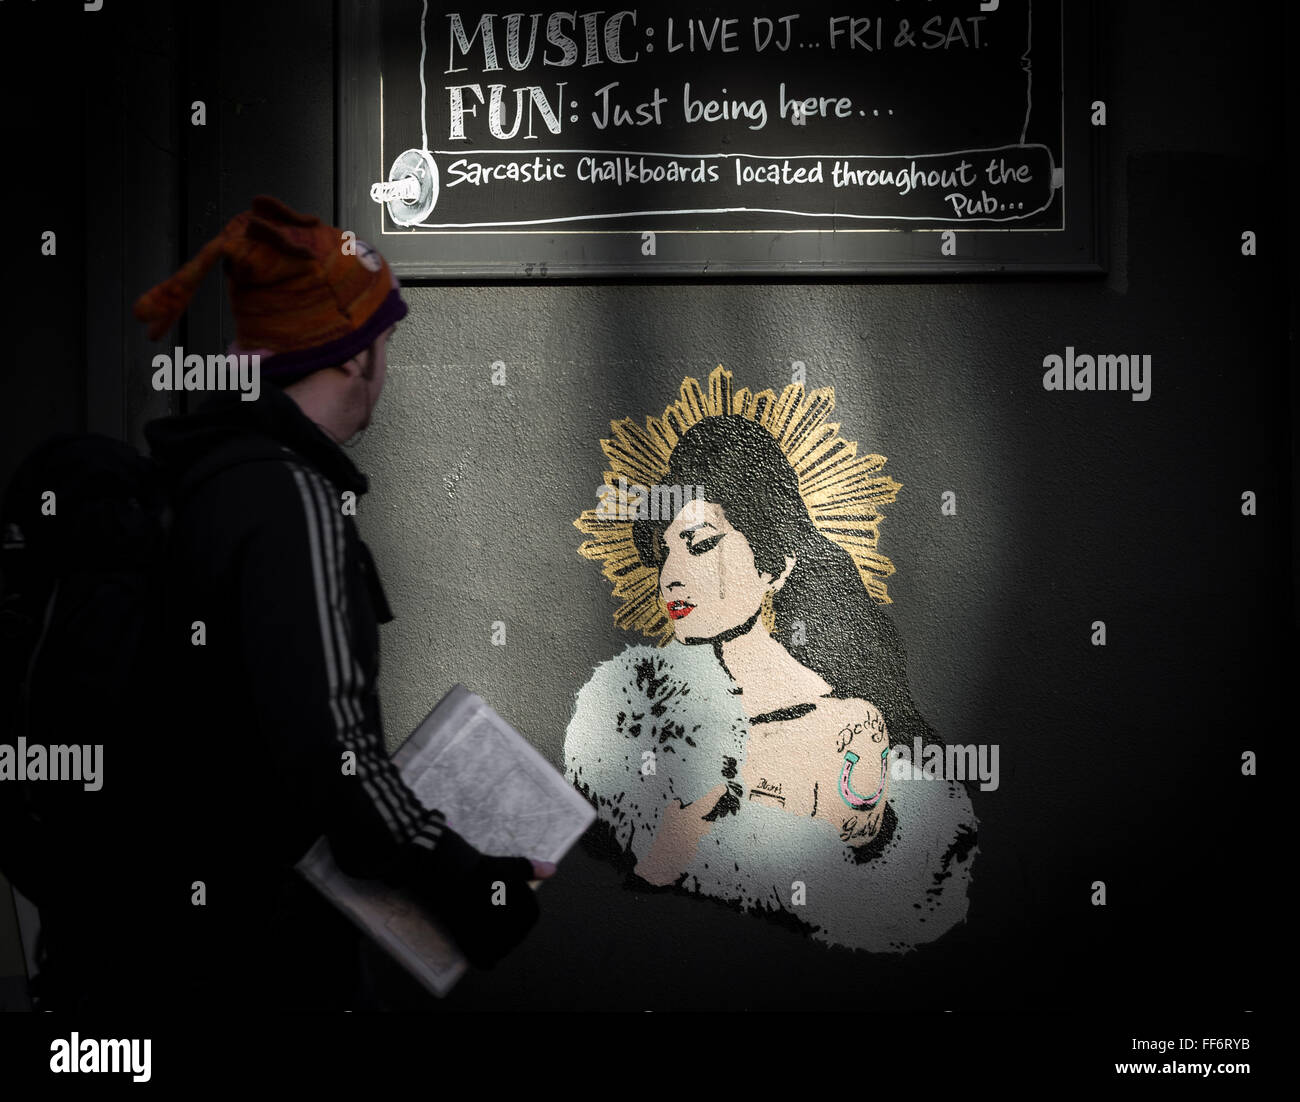 Londres, Royaume-Uni. 11 Février, 2016. Amy Winehouse murale sur mur de la Comte de Camden Road, pub, Camden Photo Stock